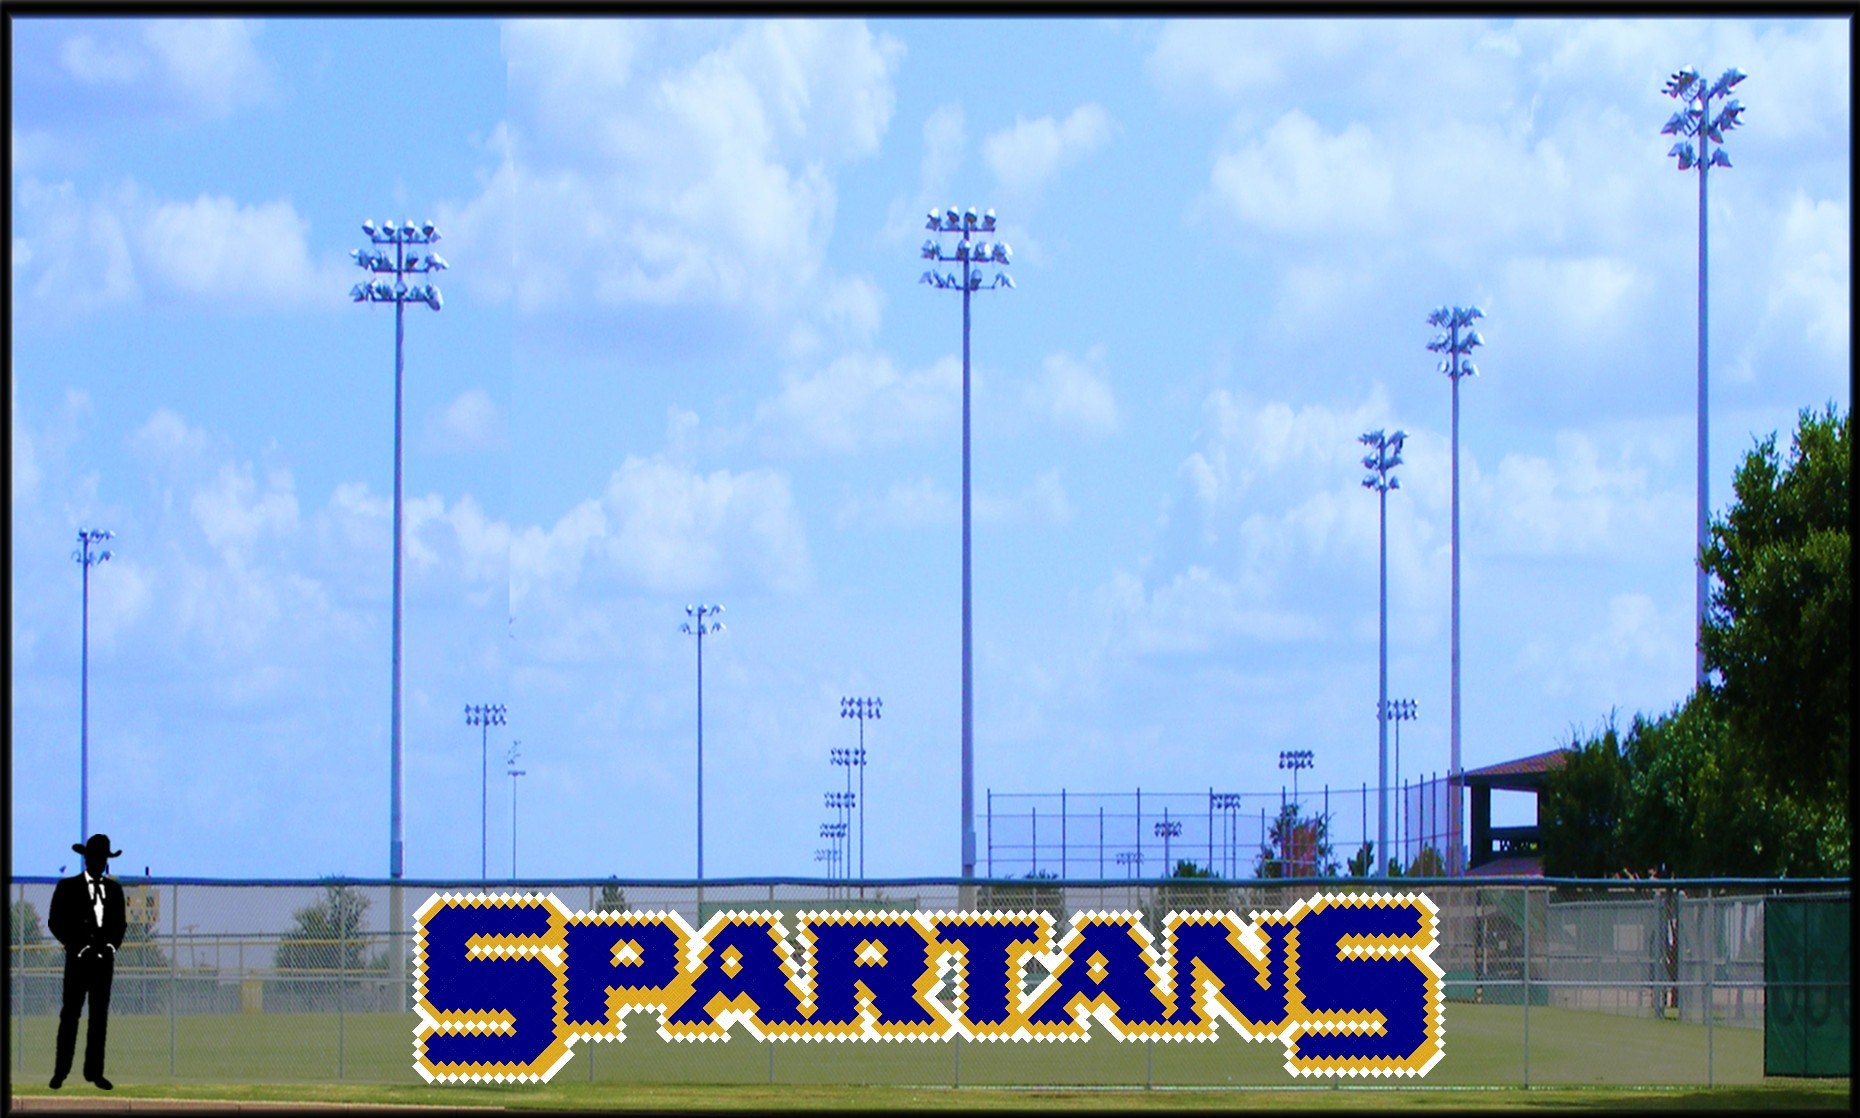 5' x 26 Bold Spartans Letters